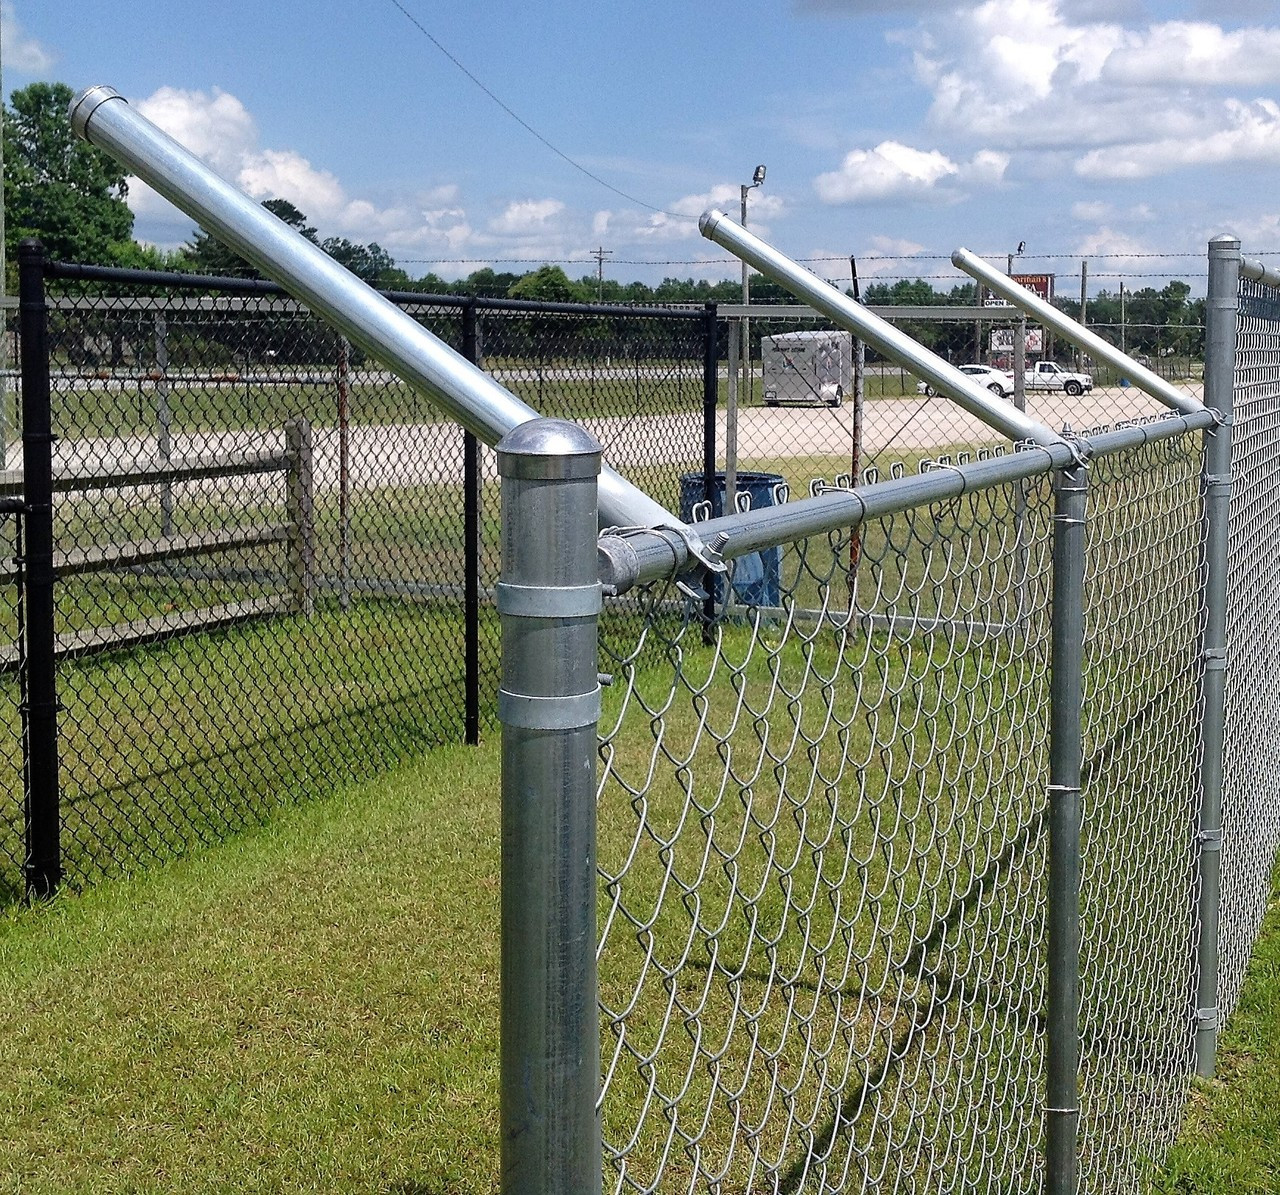 Extend A Post Extensions For Chain Link Fence Set Of 9 The